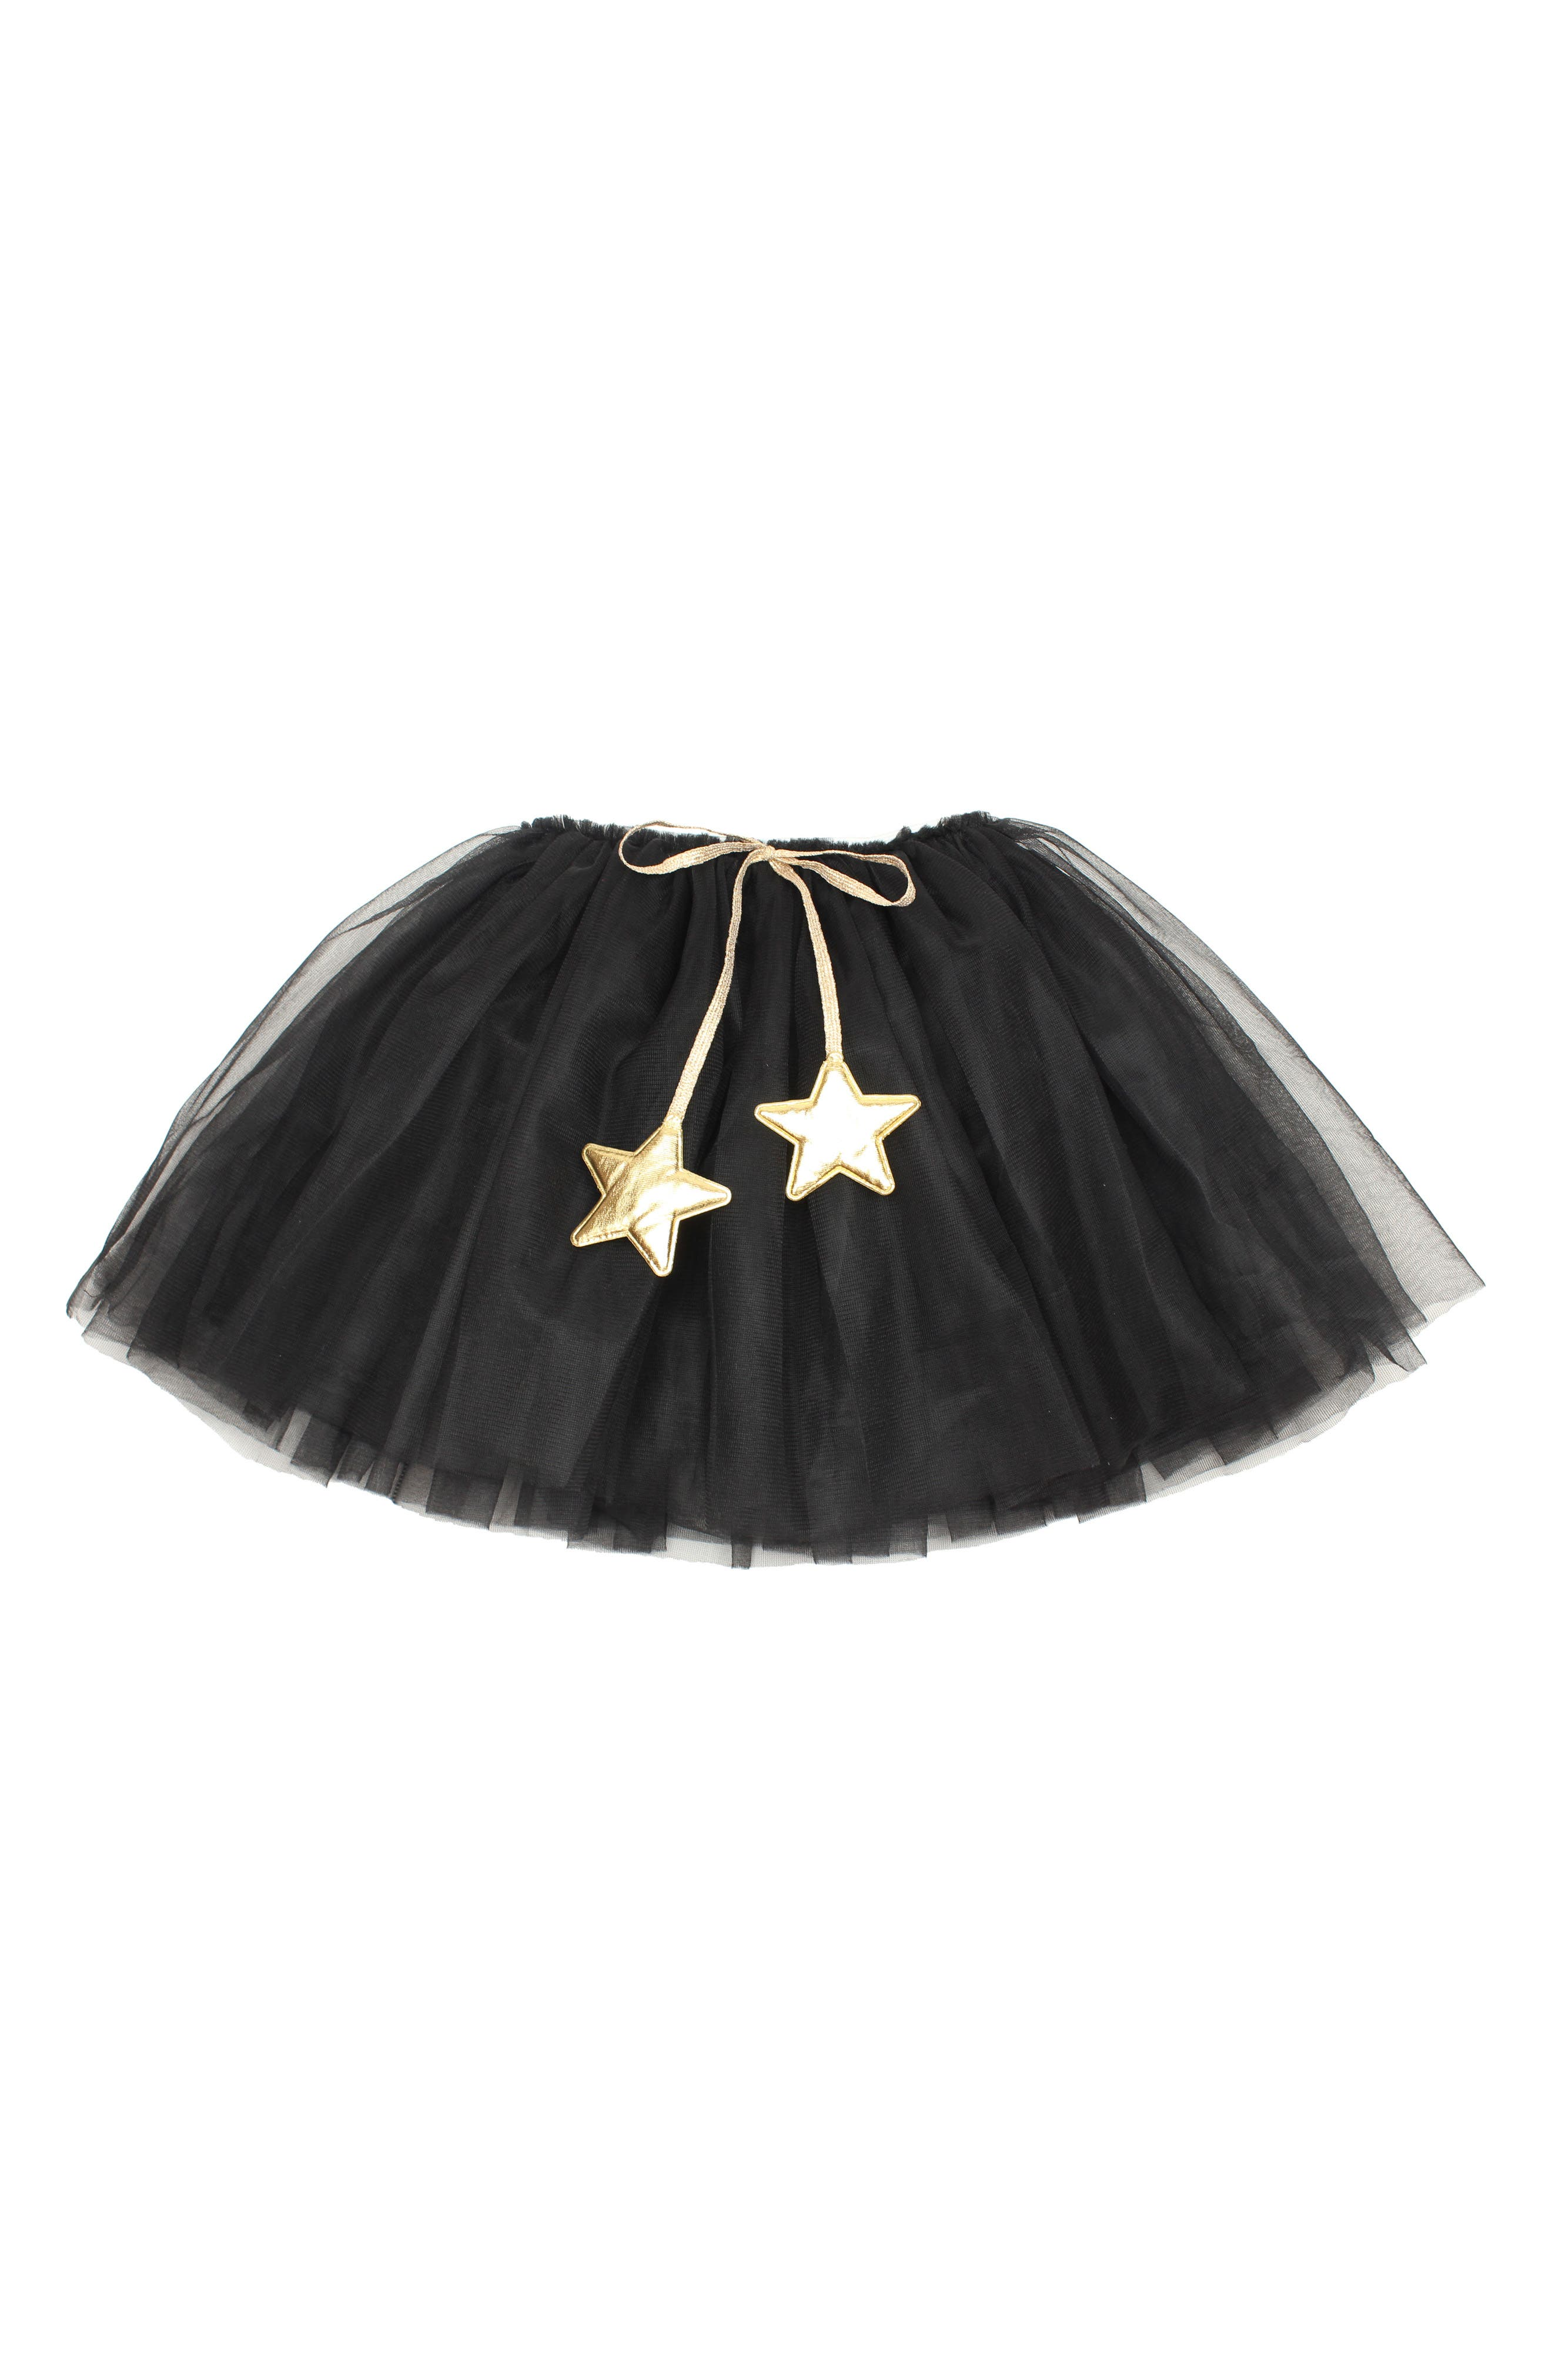 Main Image - Popatu Gold Star Tutu Skirt (Toddler Girls & Little Girls)